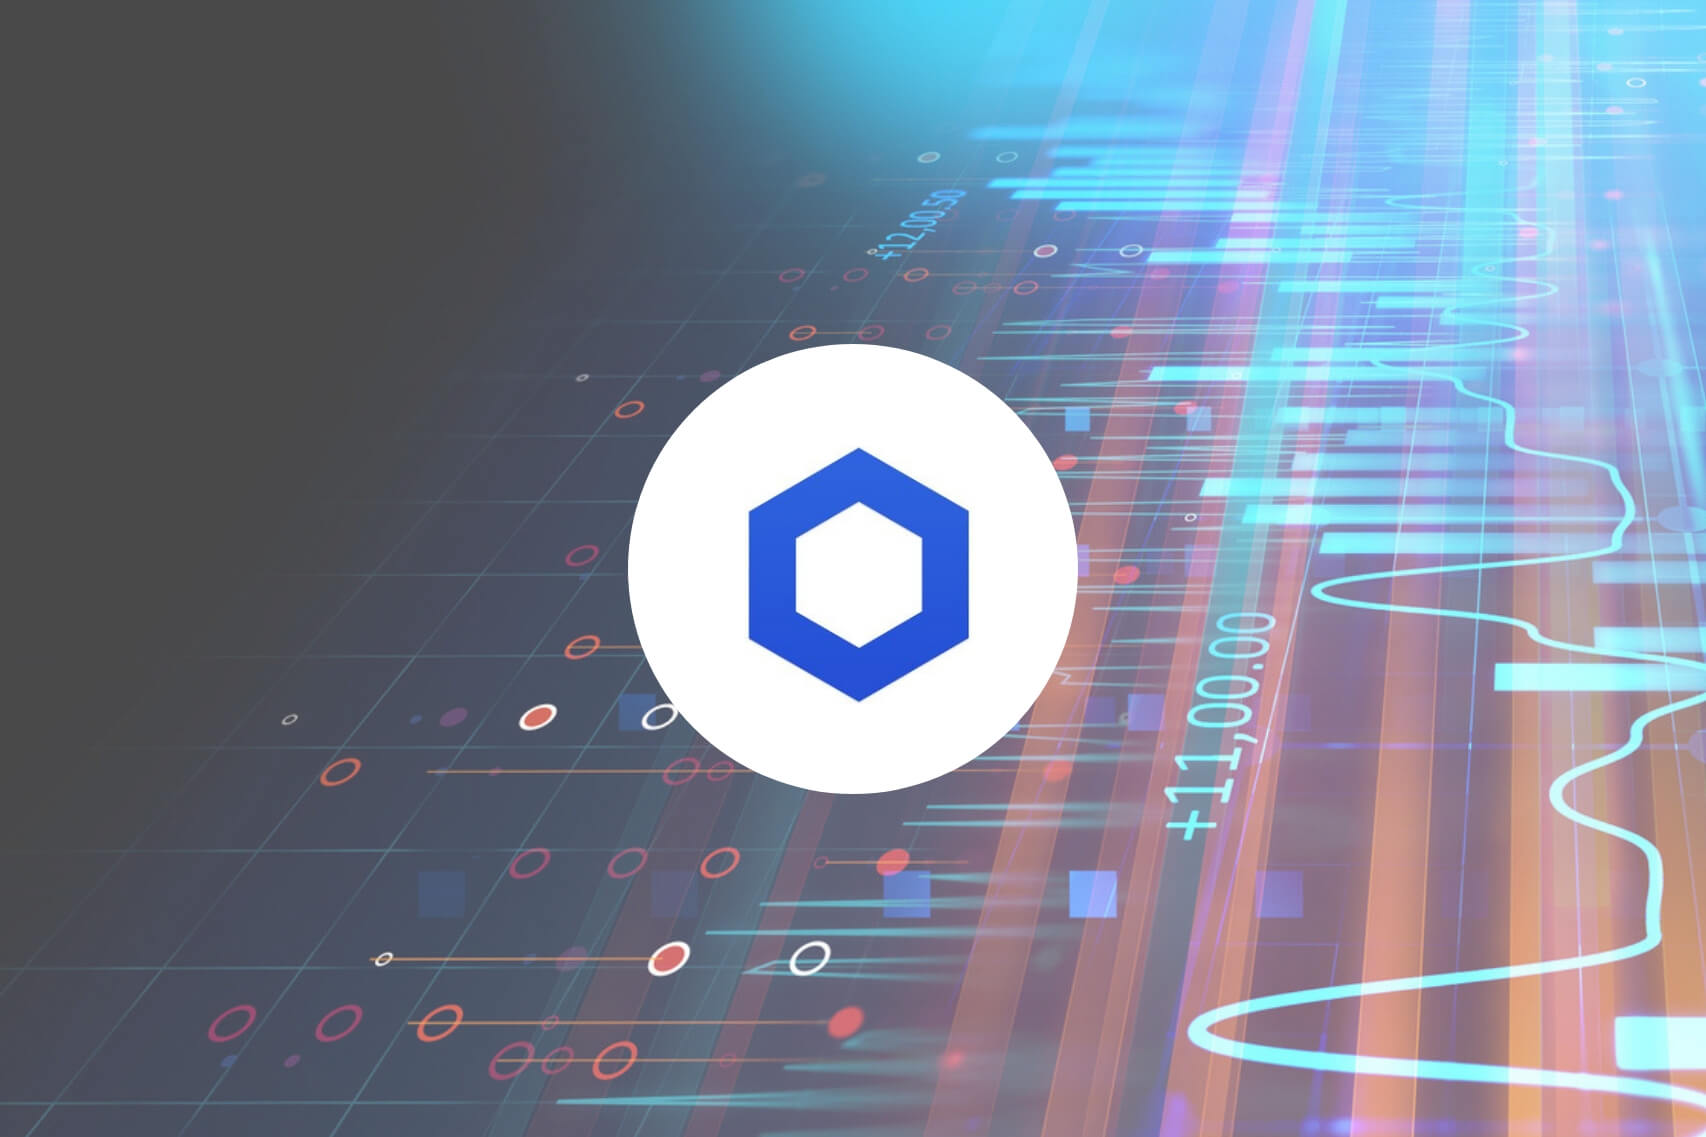 ChainLink Price Analysis: LINK Drops Back Below $0.30 as Bulls Scramble to Defend the Area; Strong Support at $0.2643